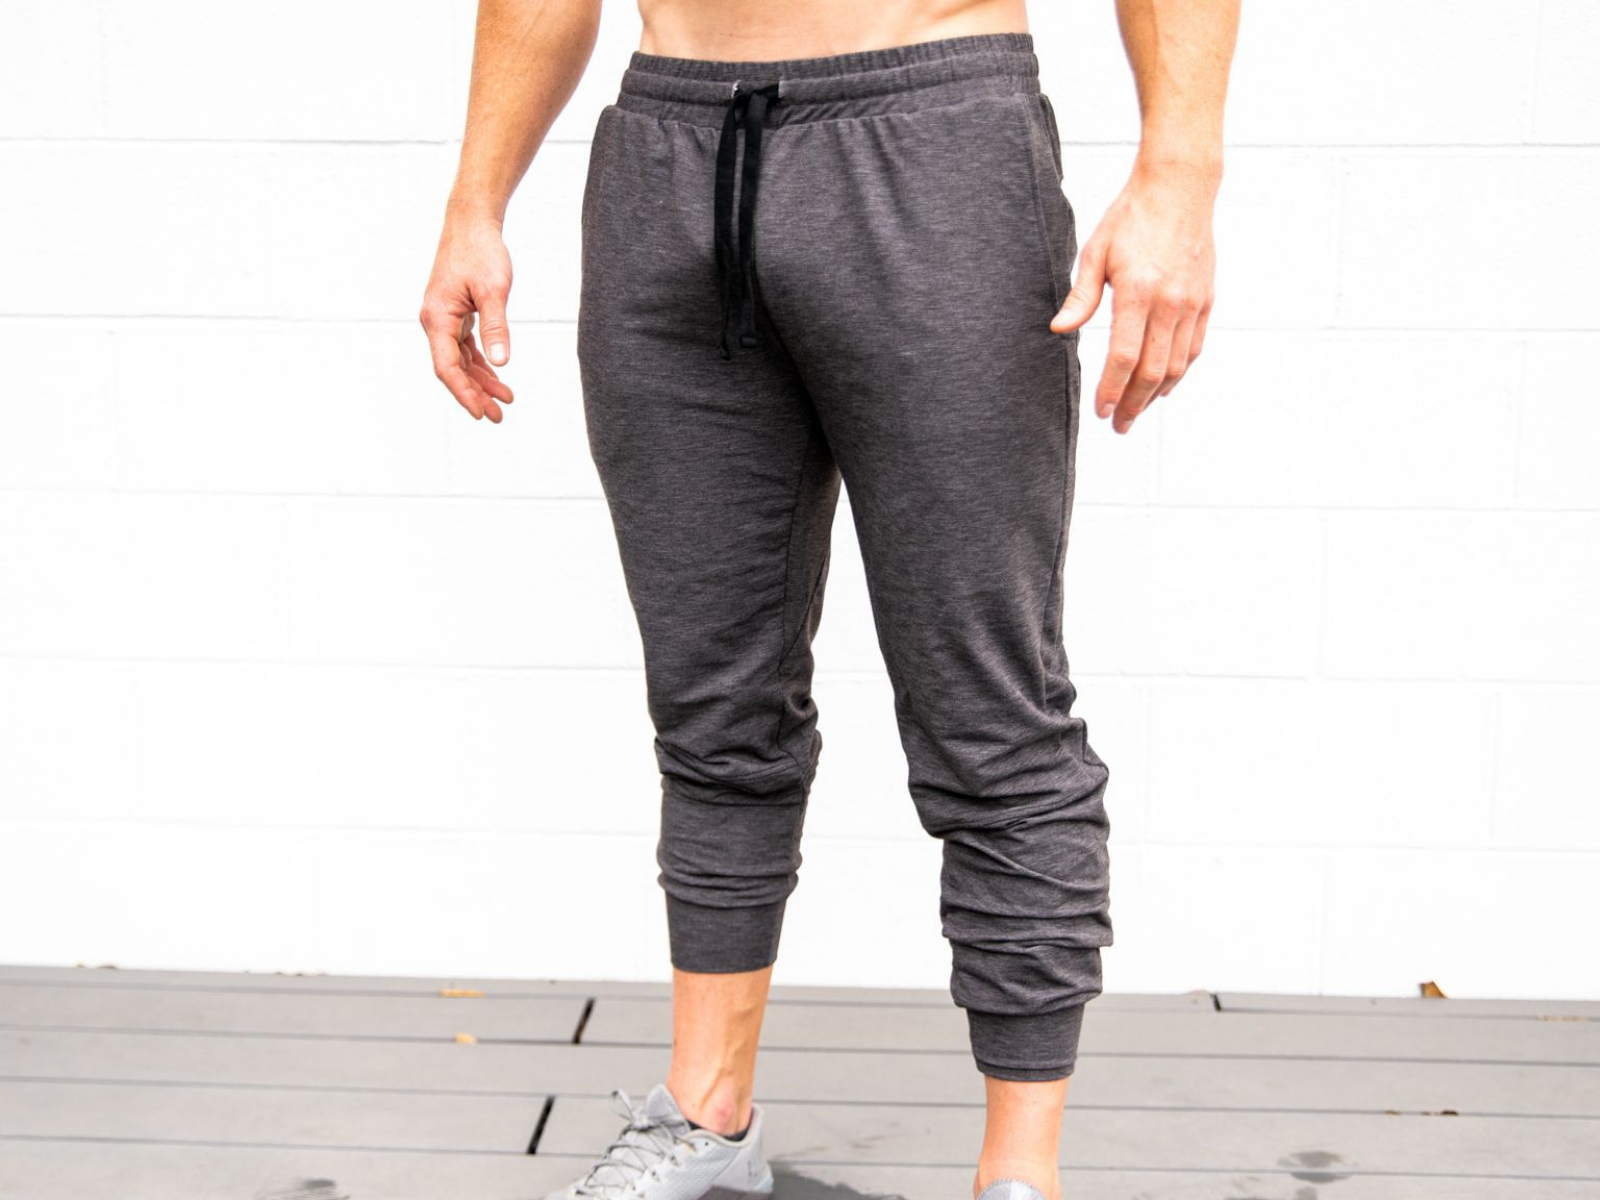 Heather Grey Unisex Joggers - 2POOD